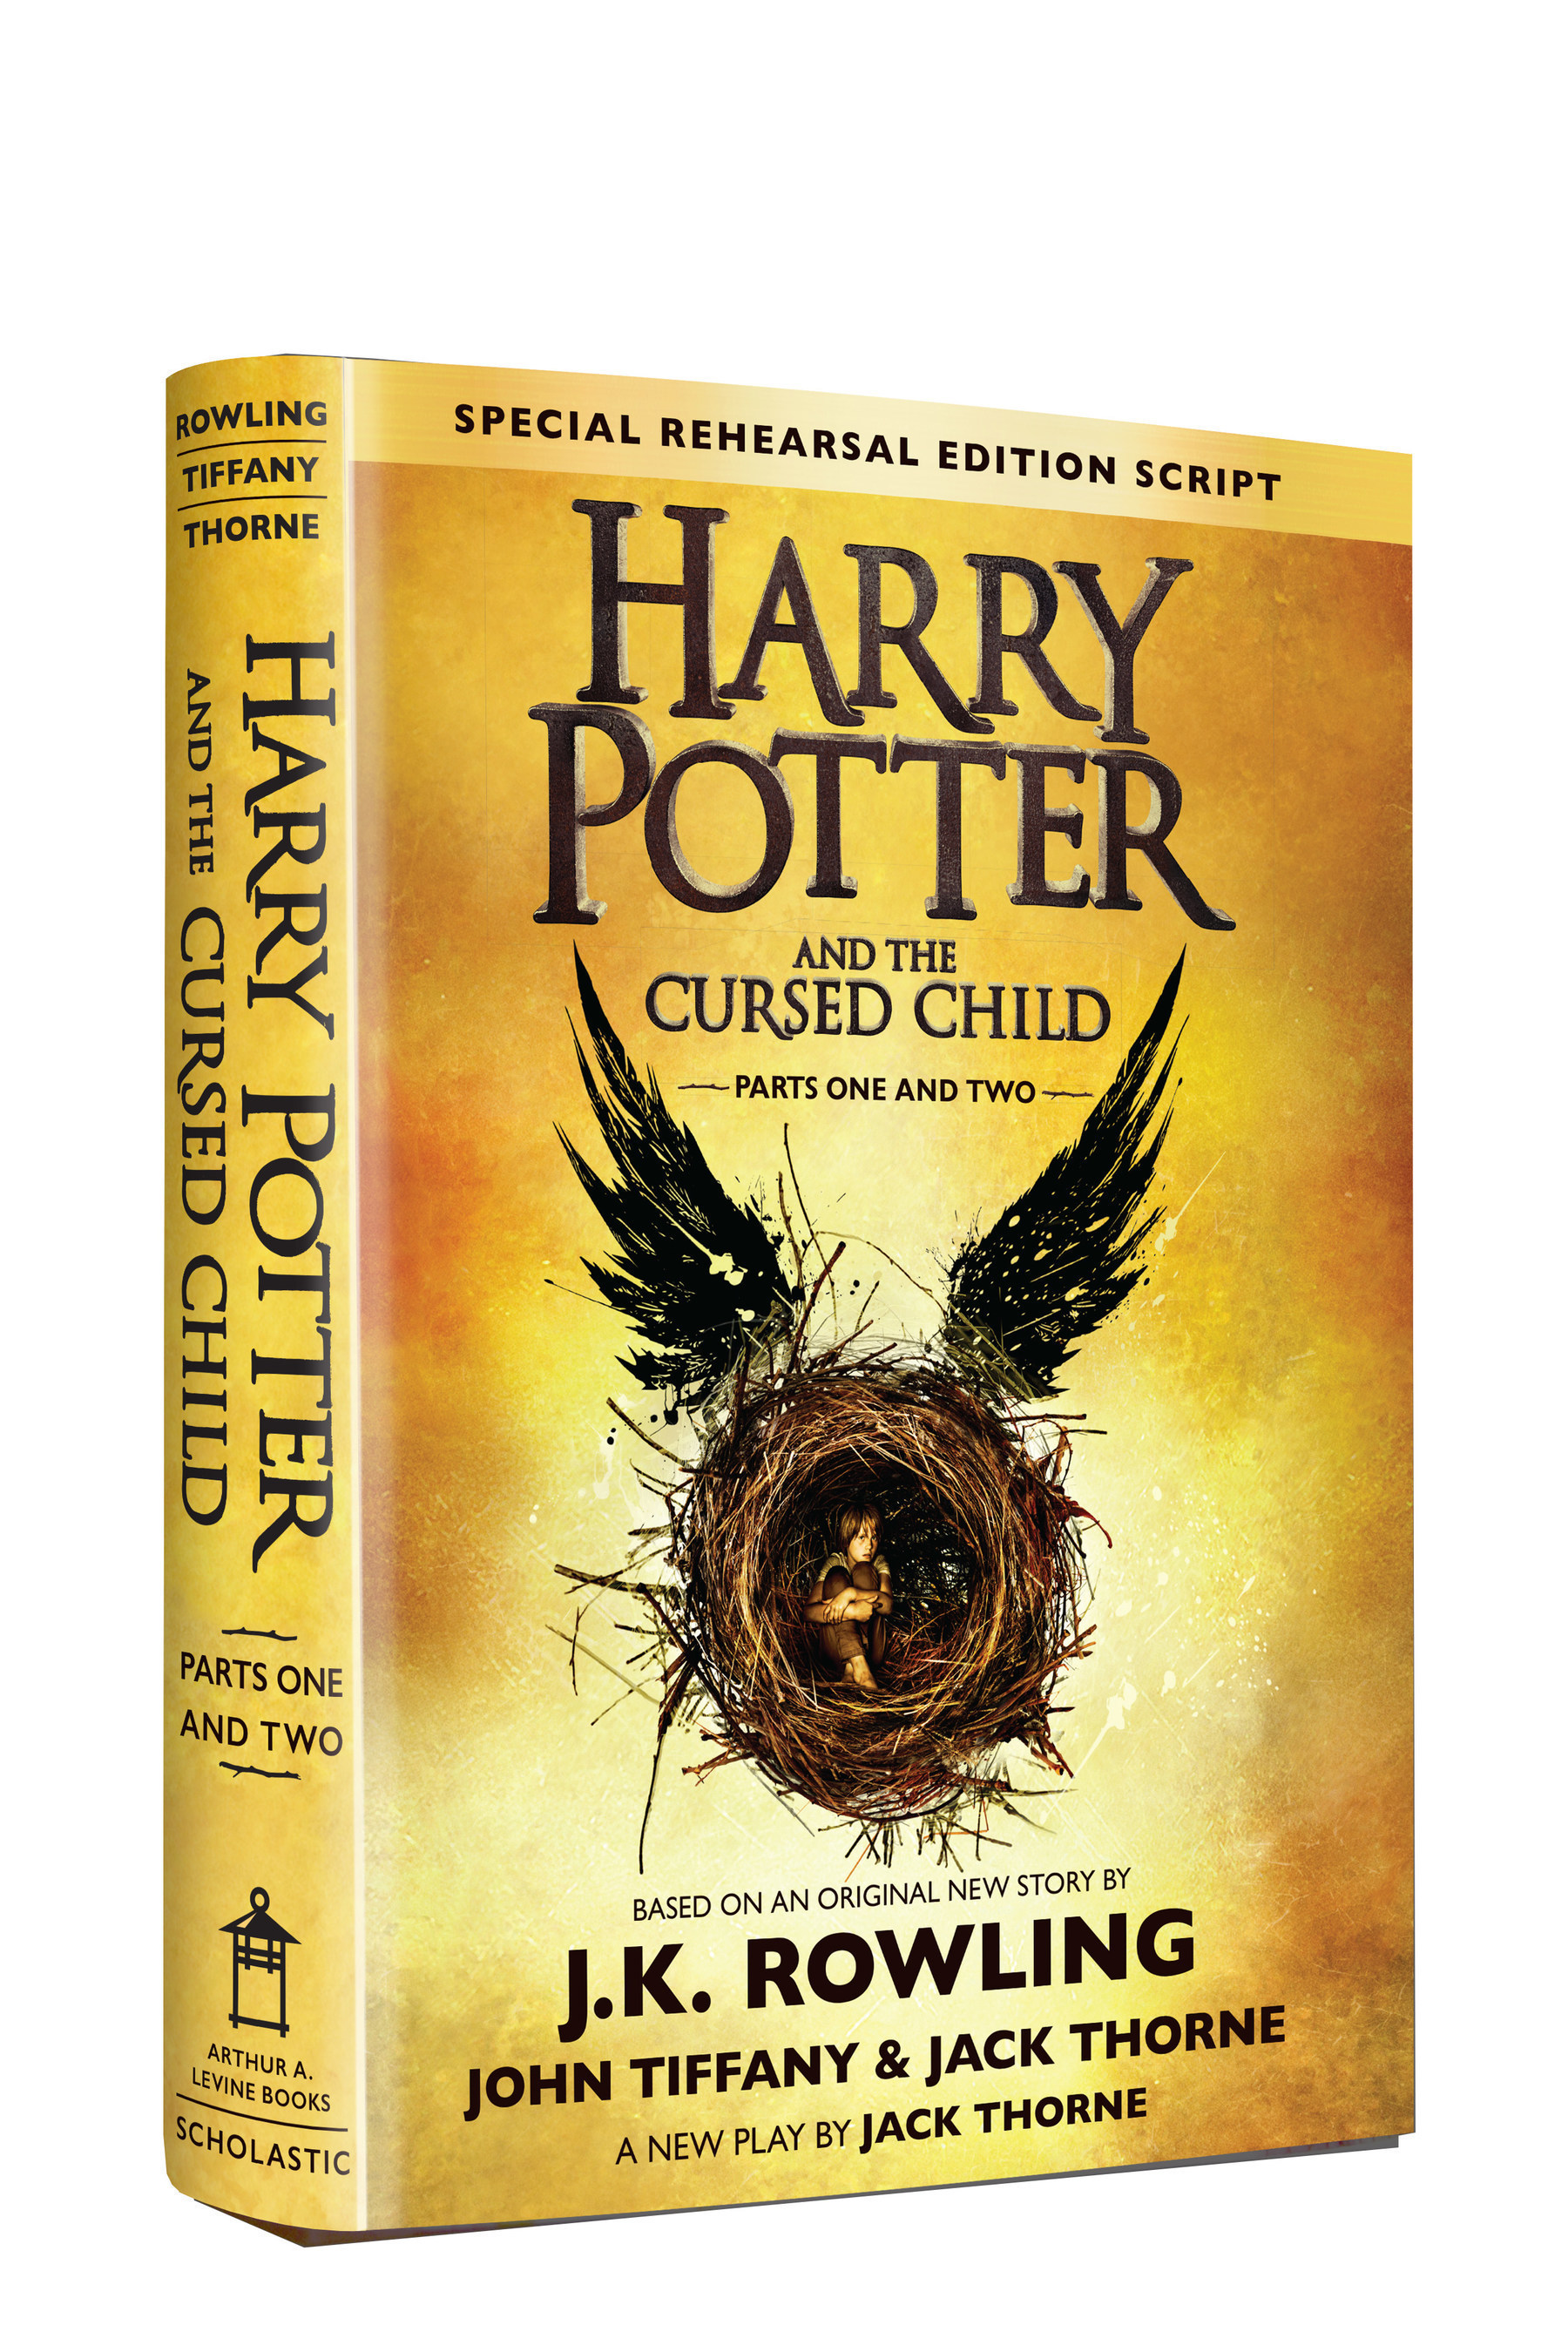 2 Days 2 Million Copies Of New Harry Potter Book Sold